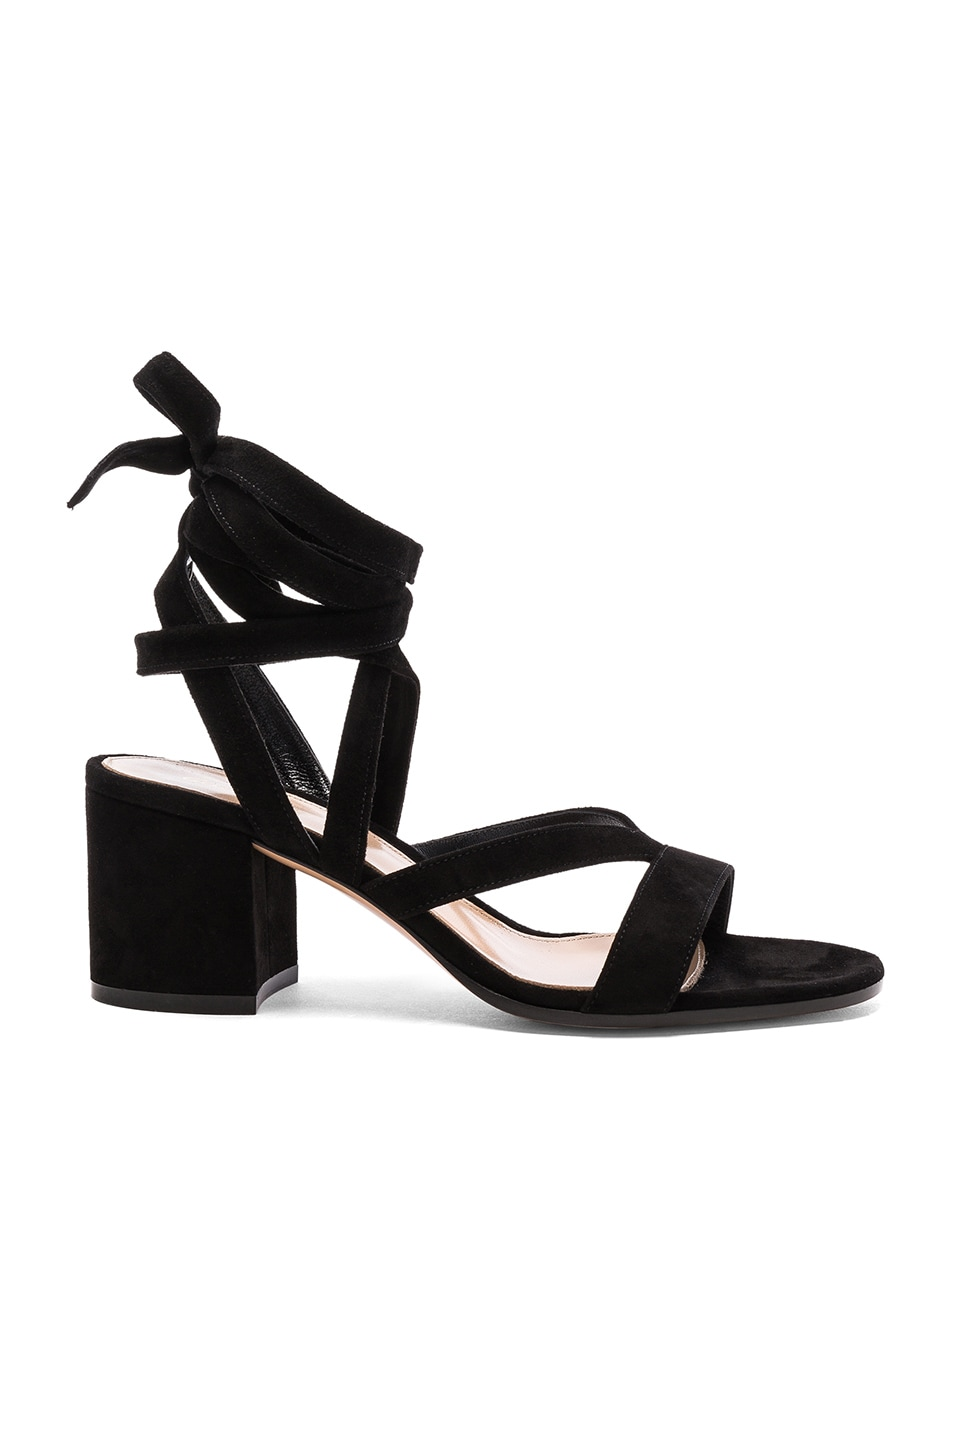 Image 1 of Gianvito Rossi Suede Janis Low Sandals in Black